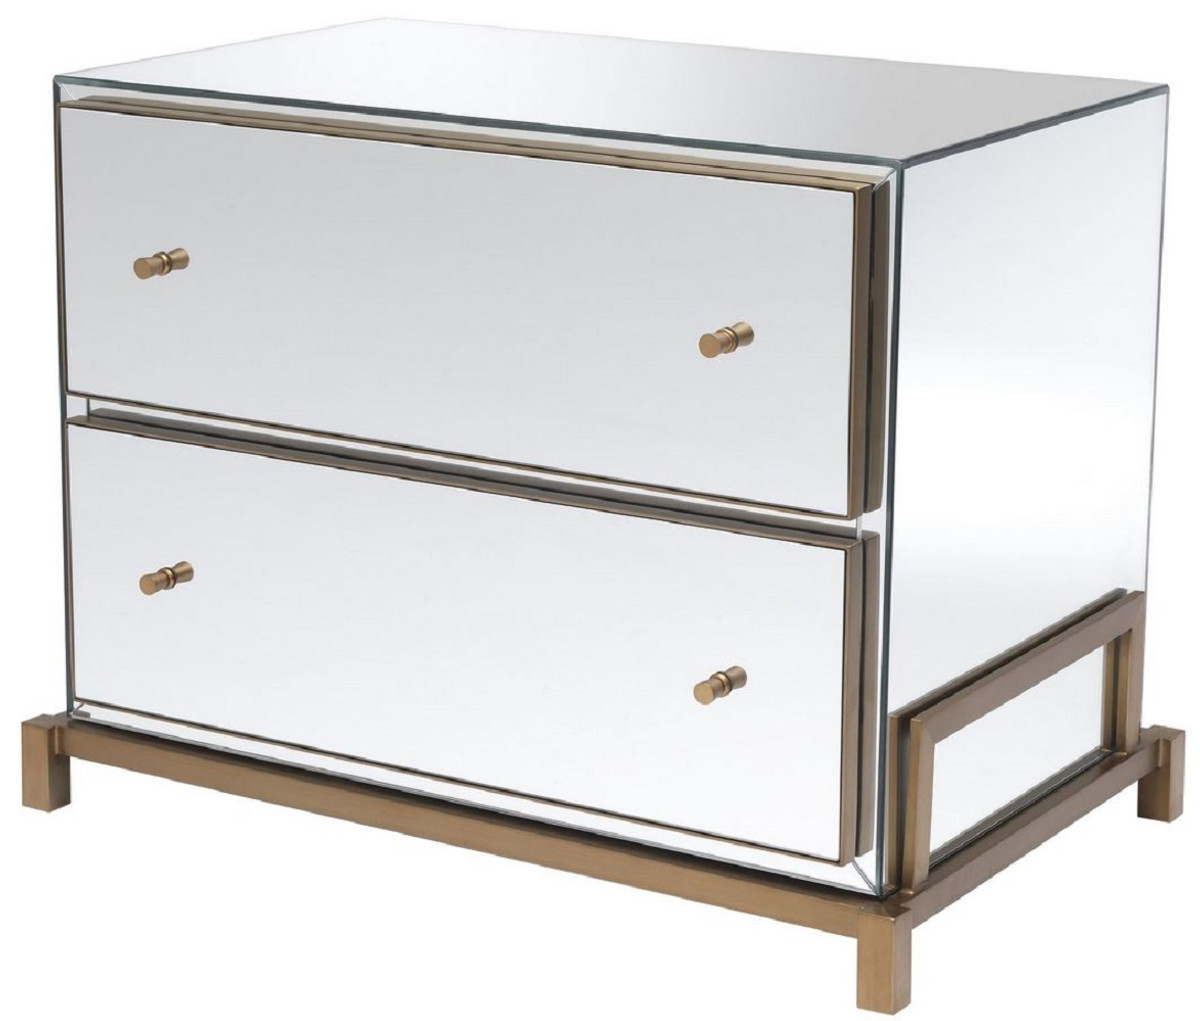 casa padrino luxury mirror glass bedside table brass 81 5 x 52 x h 62 cm mirrored nightstand with 2 drawers bedroom furniture